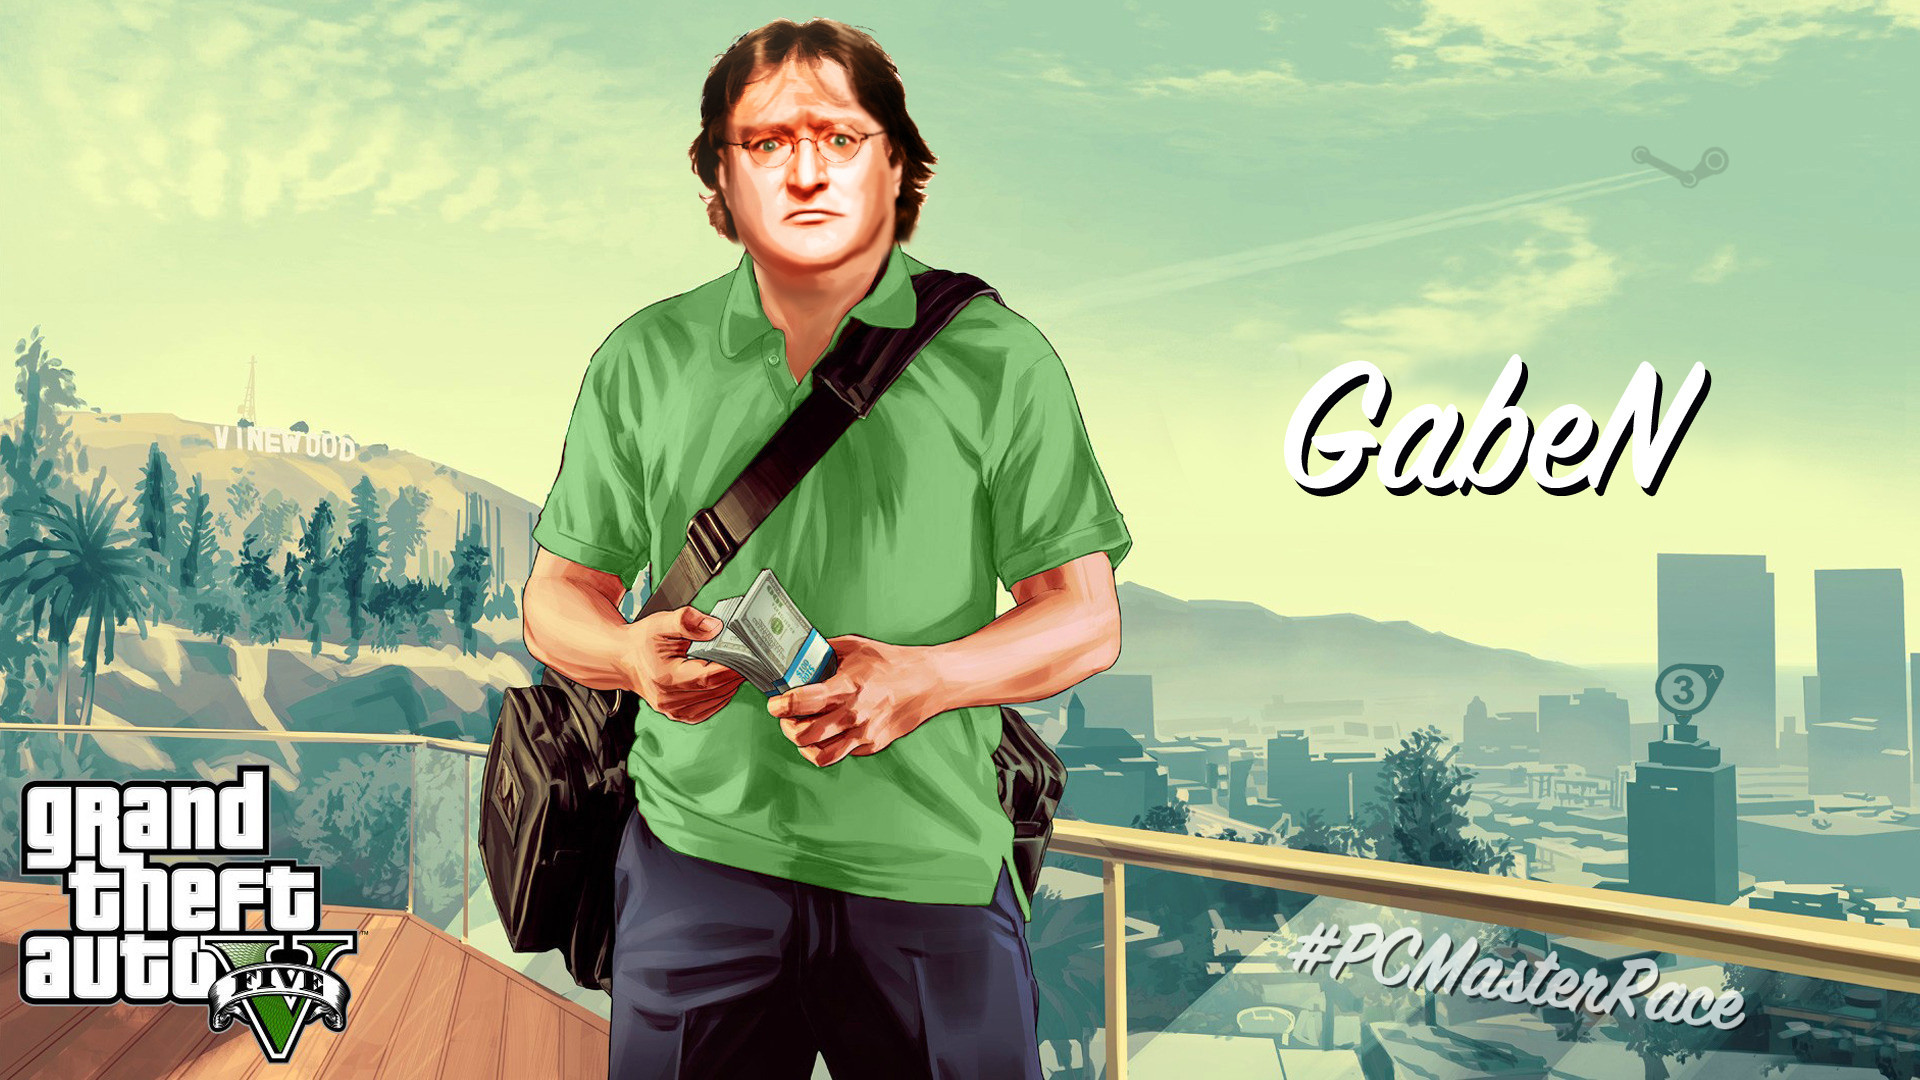 1920x1080 I Made A Glorious GabeN GTA 5 Wallpaper For All Of You